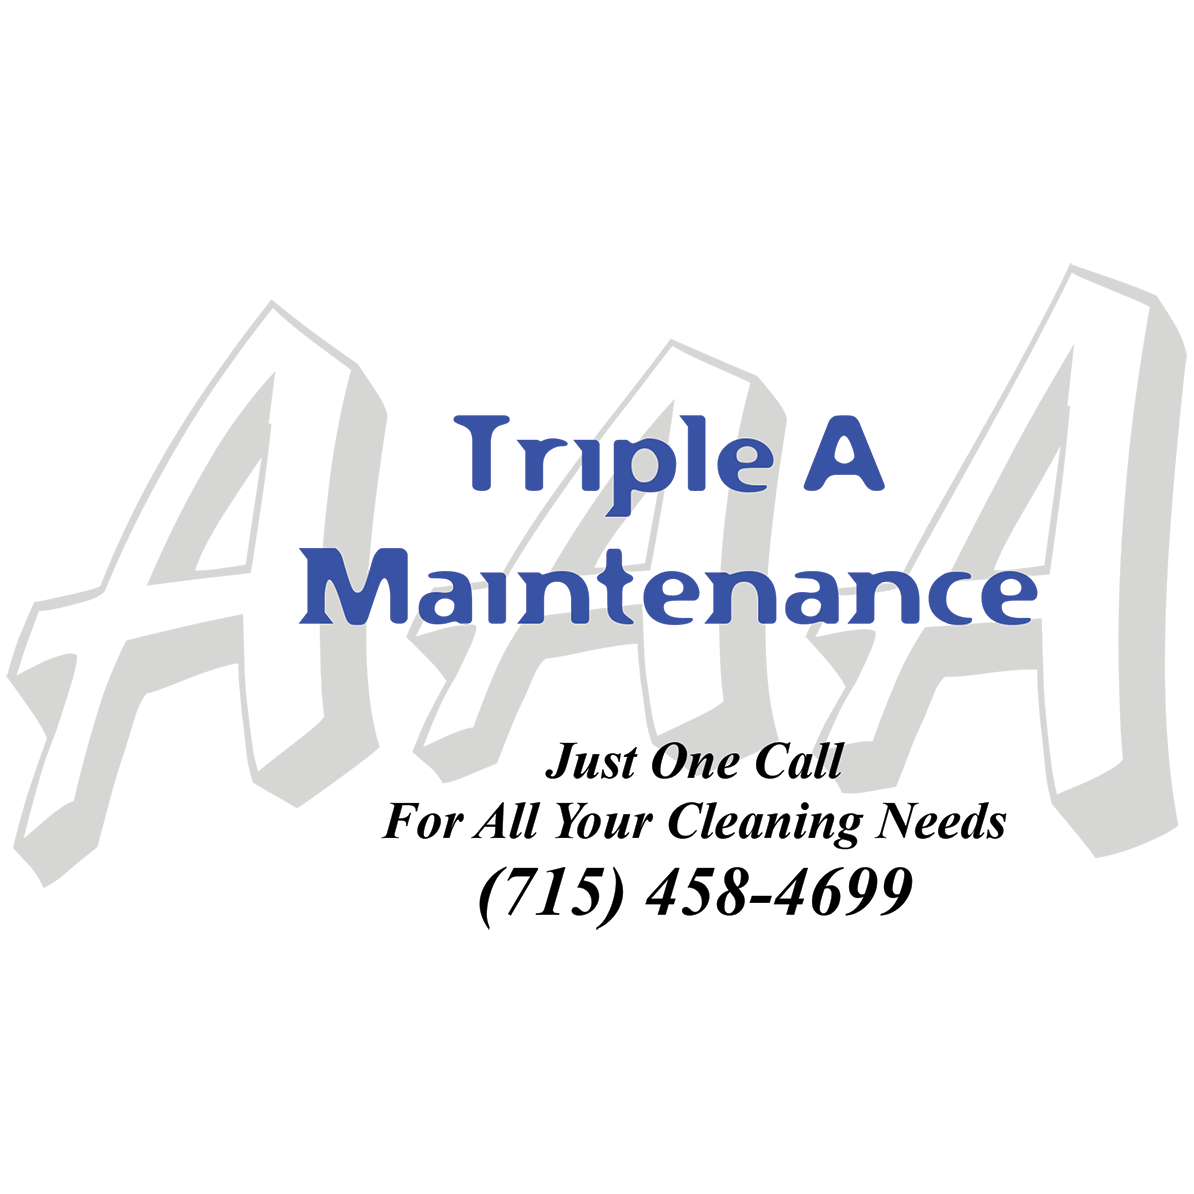 Triple A Maintenance Ad